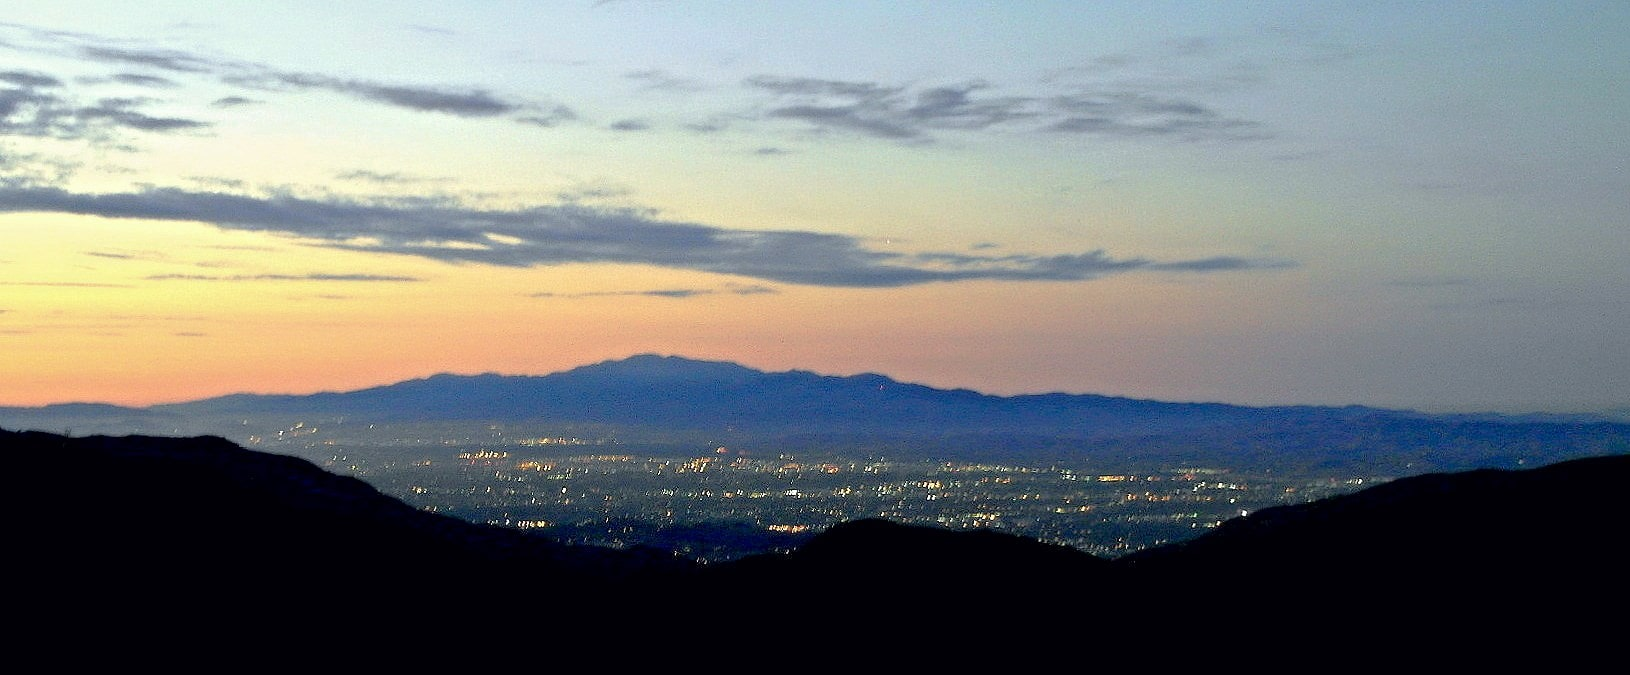 San Gabriel Valley is one of the most beautiful places to visit in LA